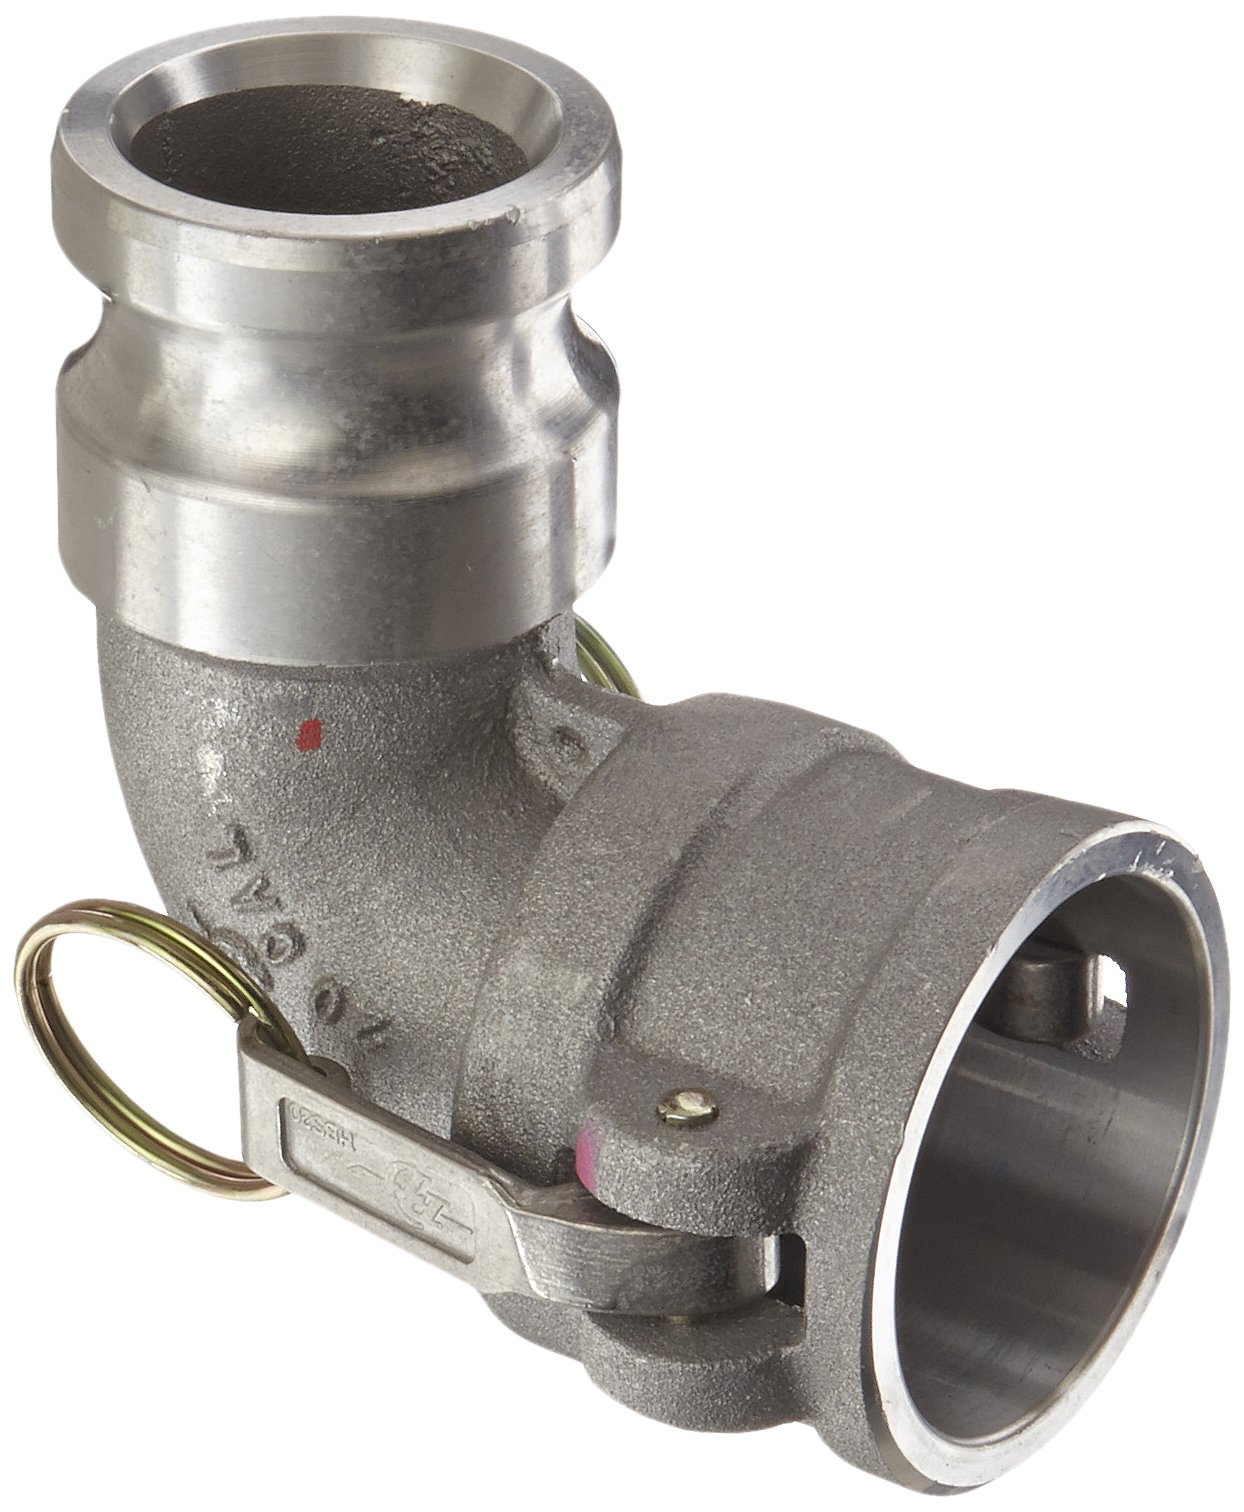 PT Coupling CAL Series 20CAL Aluminum Cam and Groove Hose Fitting, 90 Degree Elbow, Stainless Steel 300 (HBS) Cam Arms, 2'' Coupler x Adapter